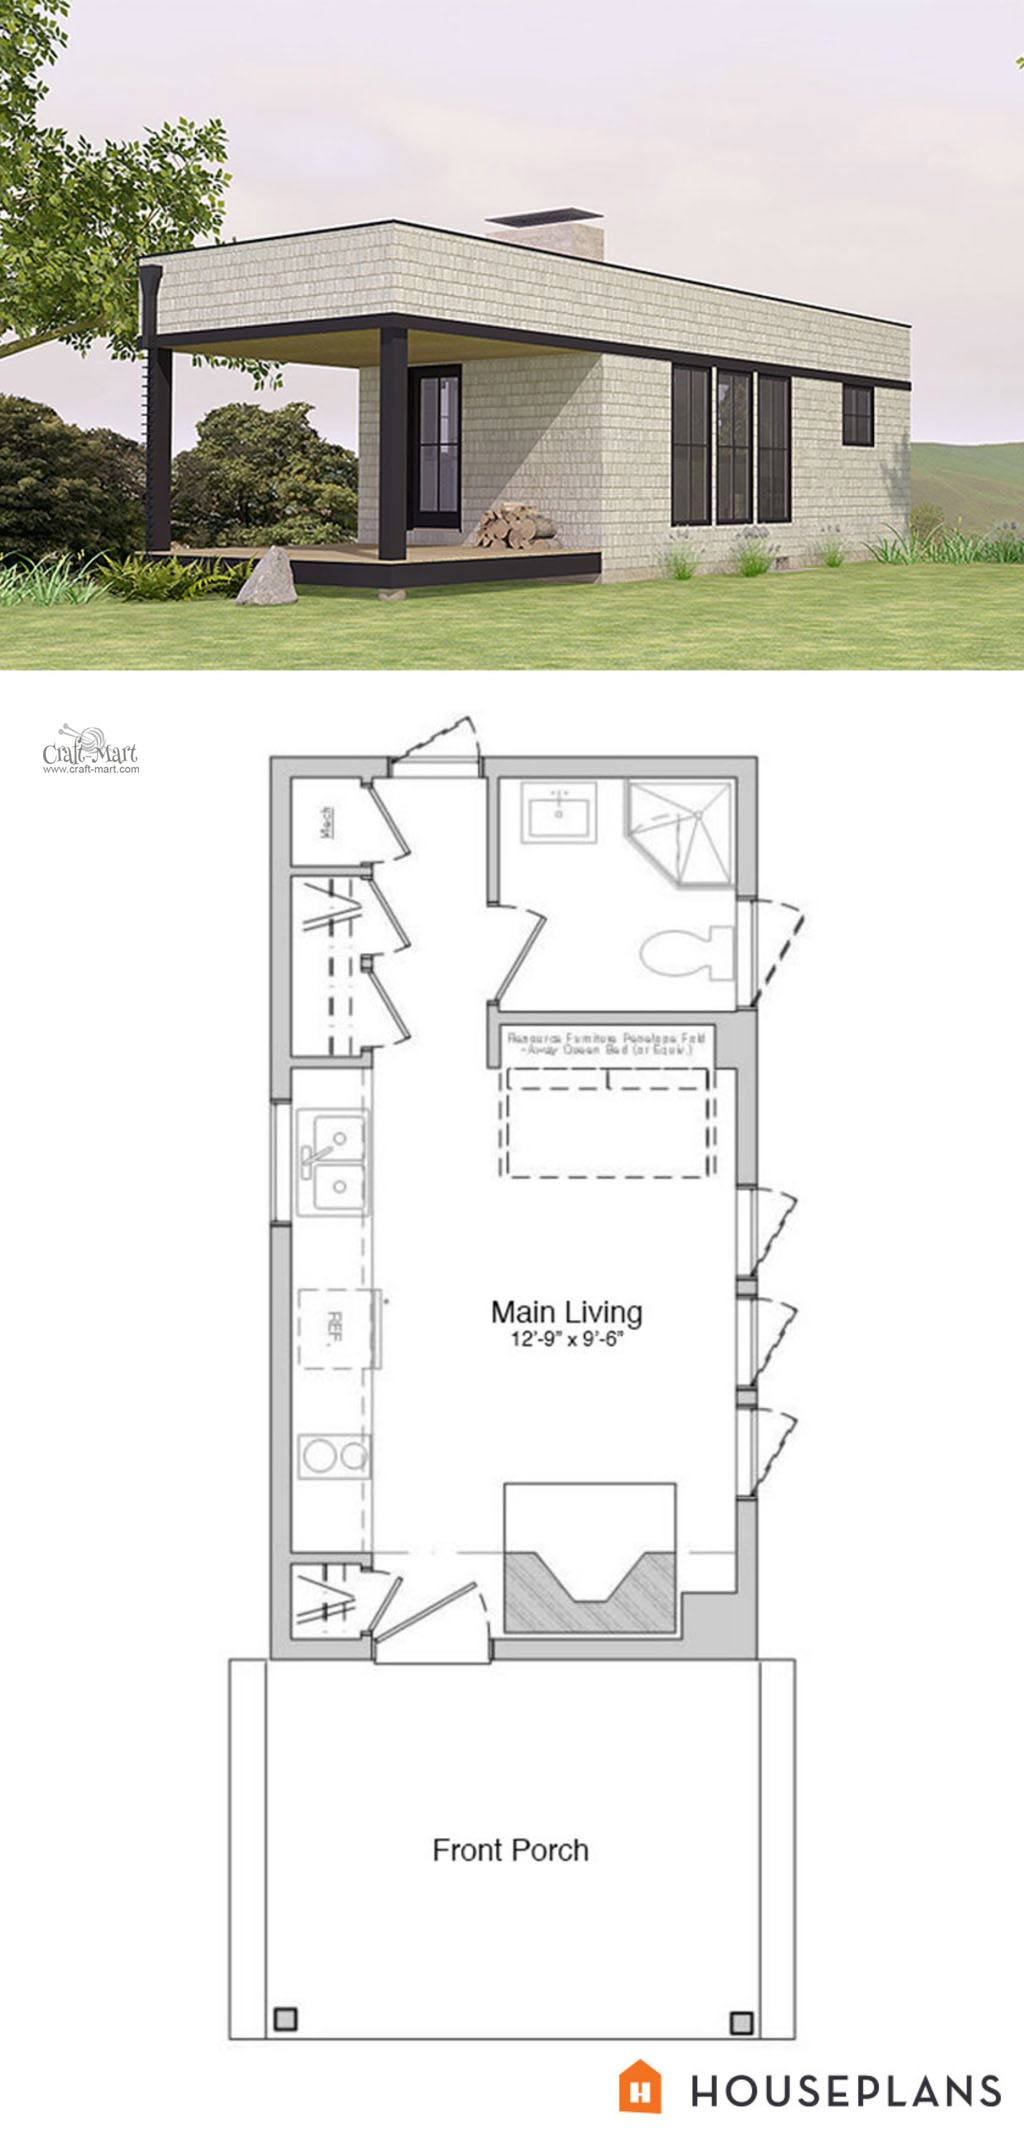 Plans for Tiny Houses Unique 27 Adorable Free Tiny House Floor Plans Craft Mart